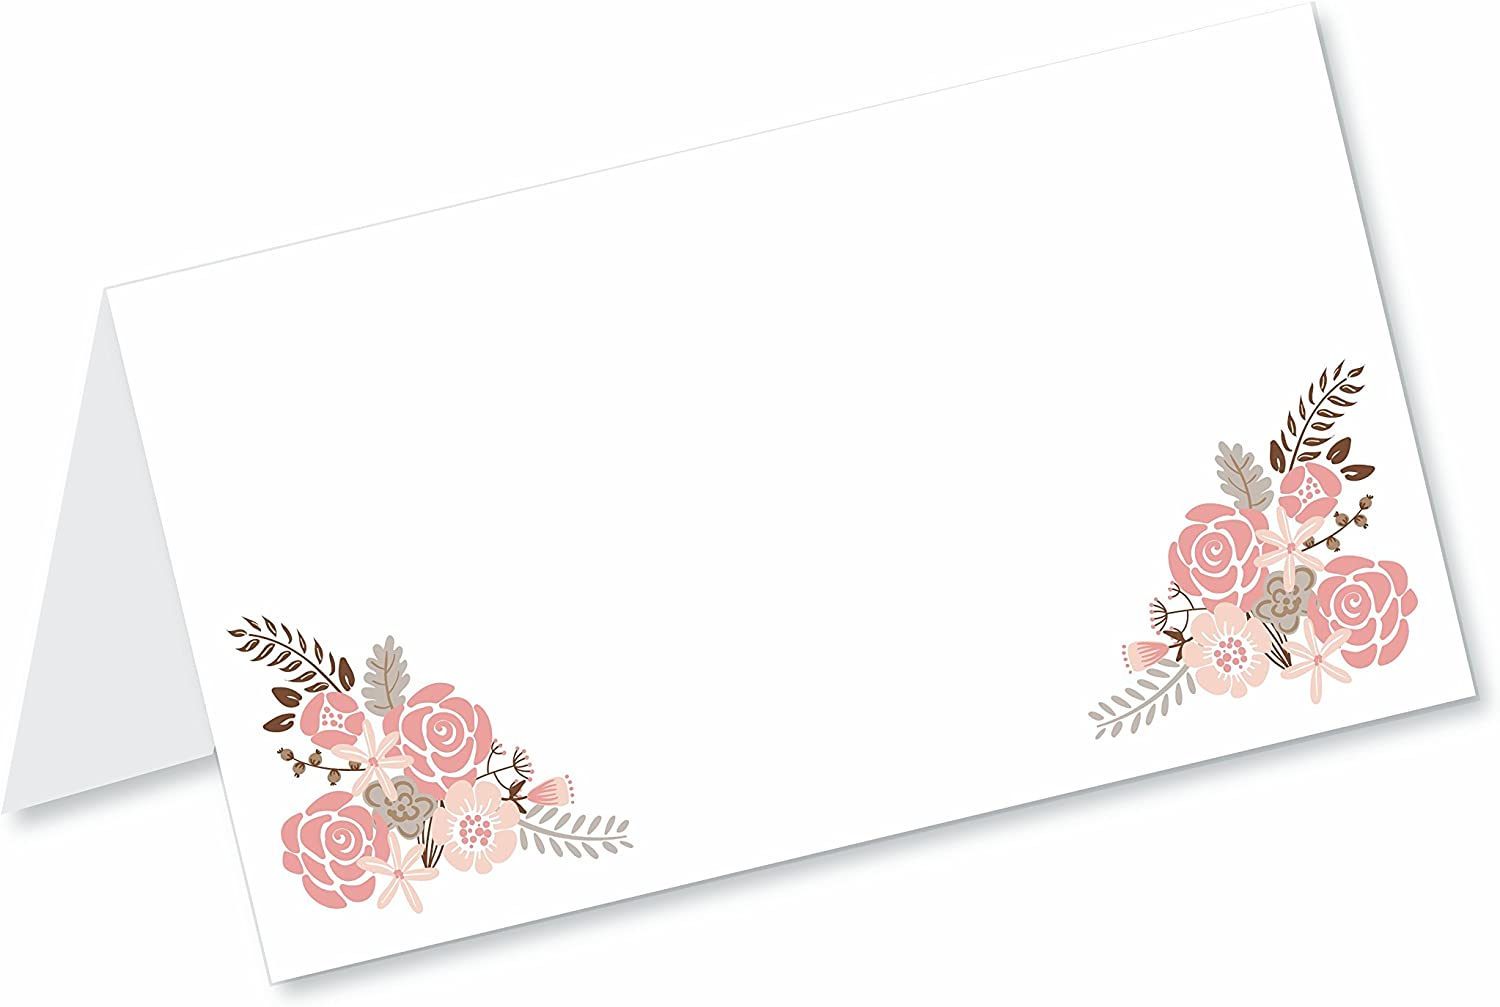 Old Blue Door Invites Boho Floral Blank Tented Table Place Cards (50 Count) - Fold Over Tent Style - Wedding, Bridal Shower, Dinner Party Banquet Event Place Seating Cards